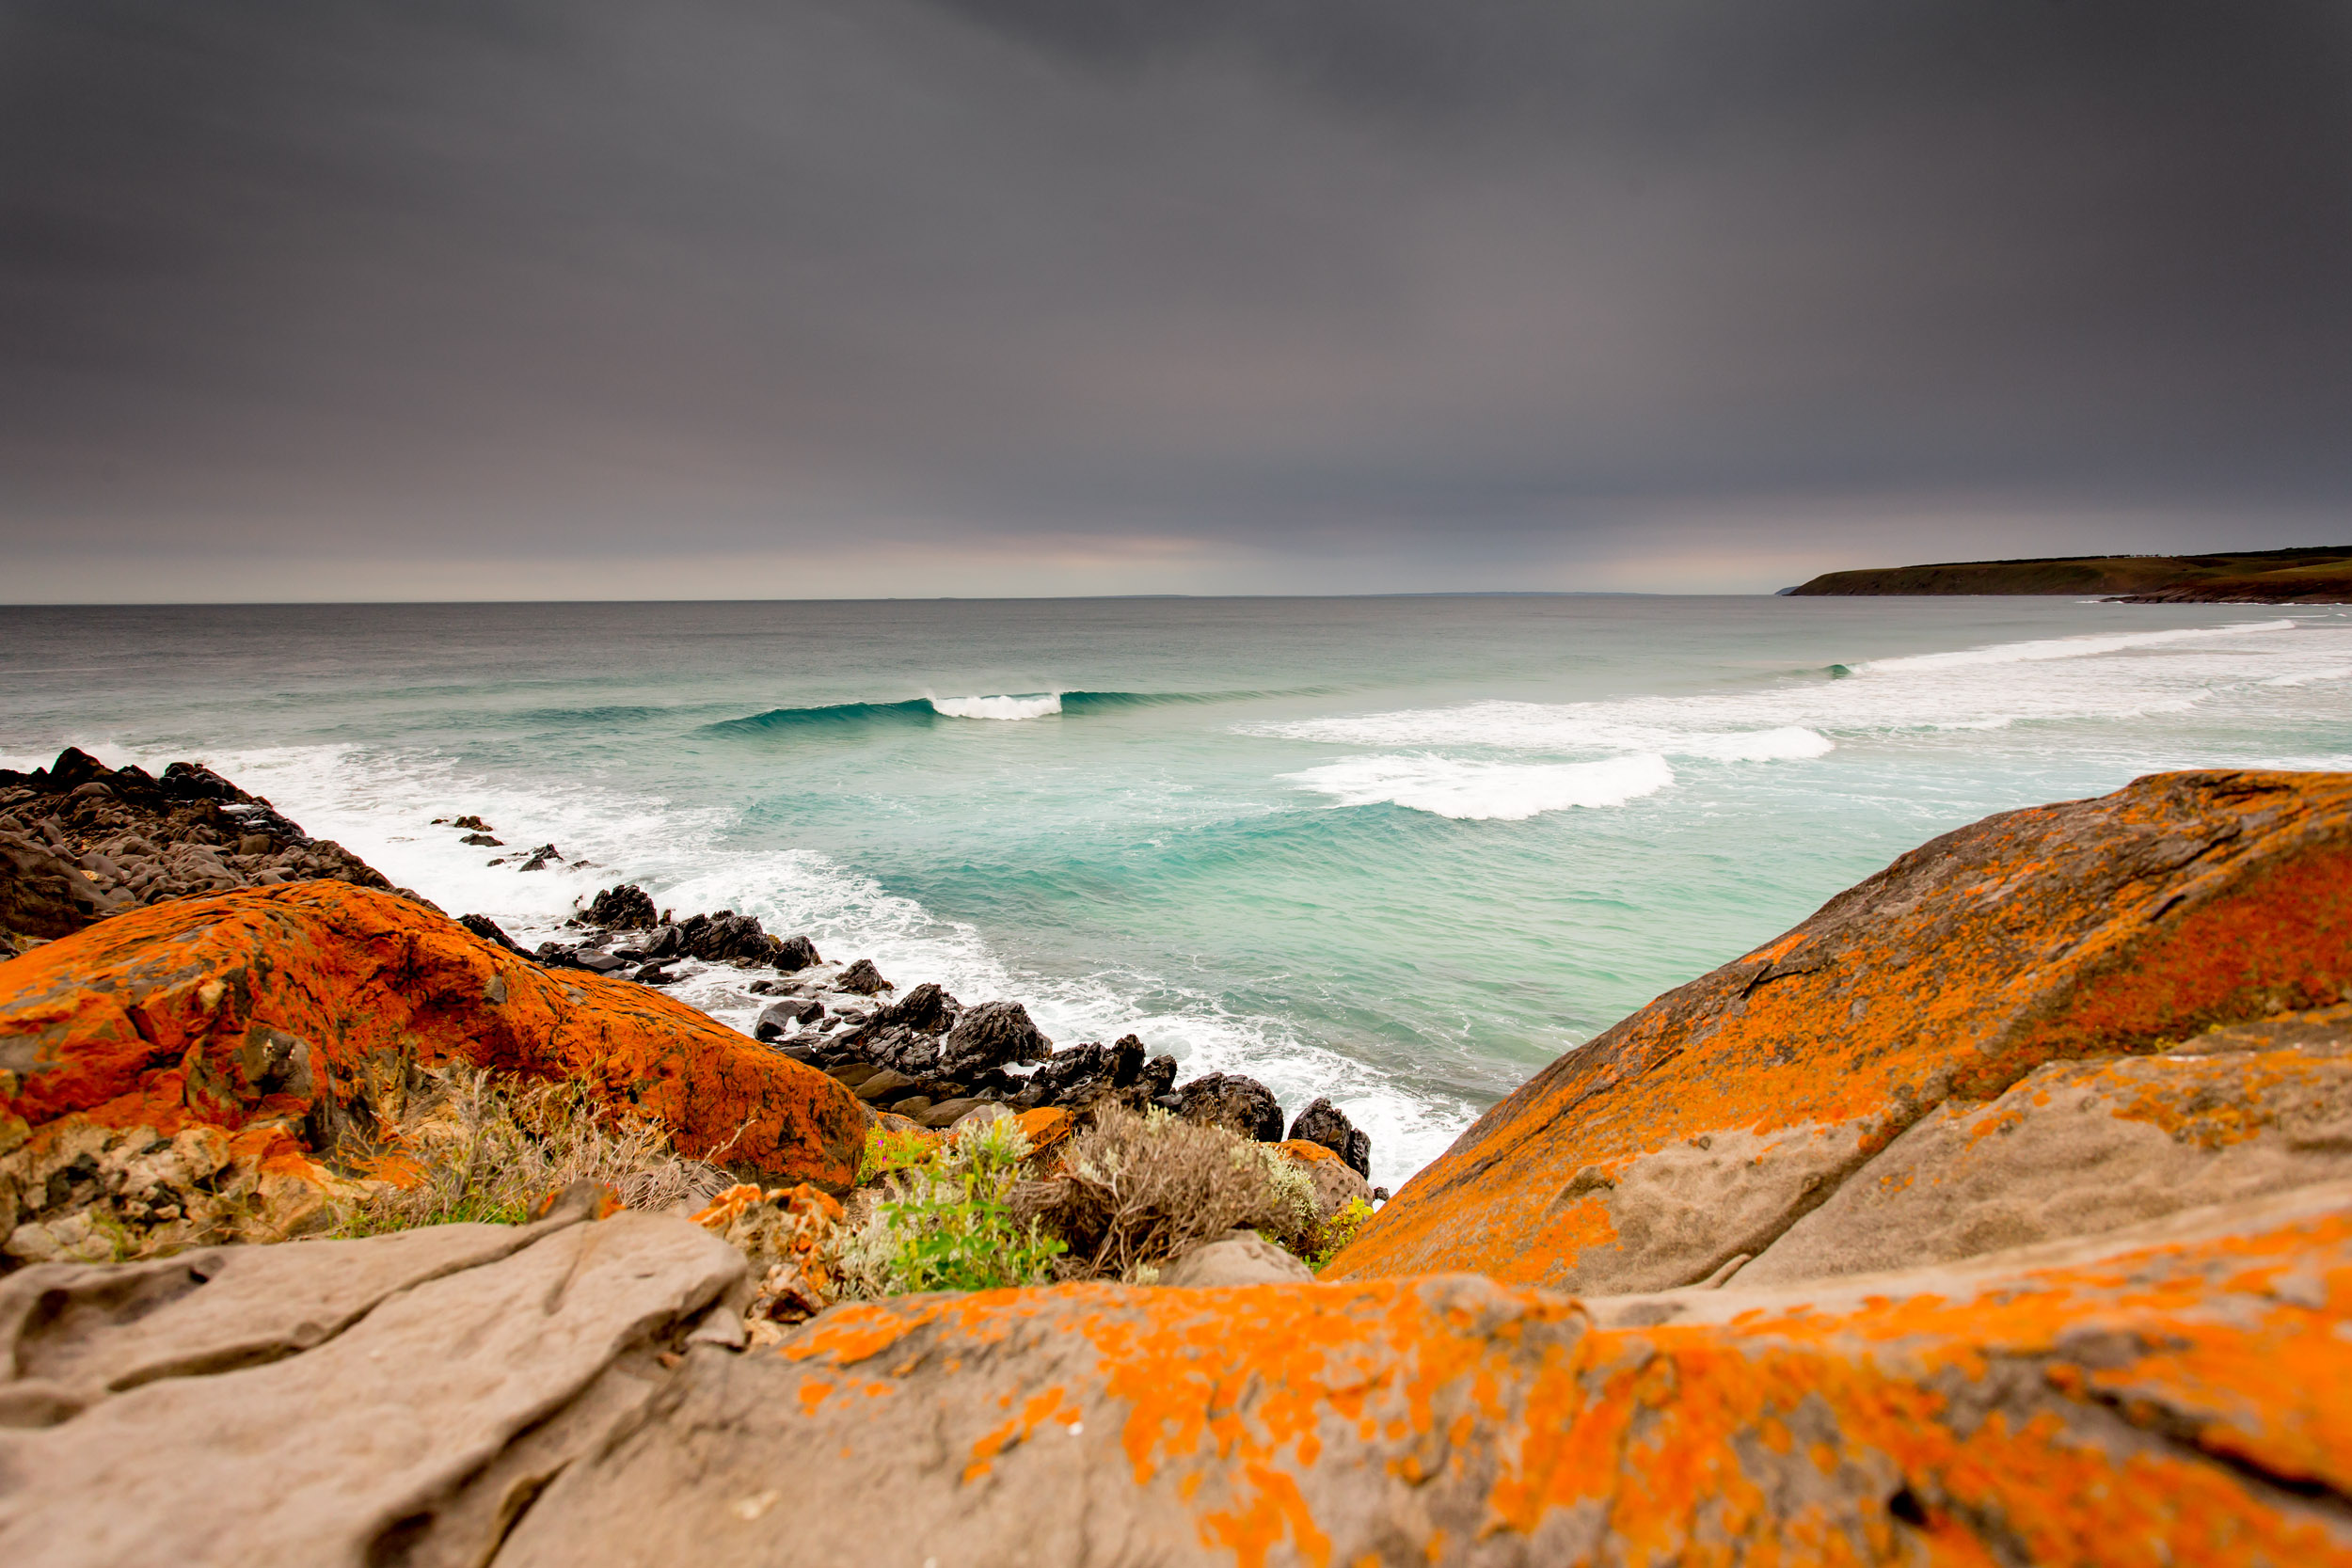 parsons-beach-south-australia-landscape.jpg